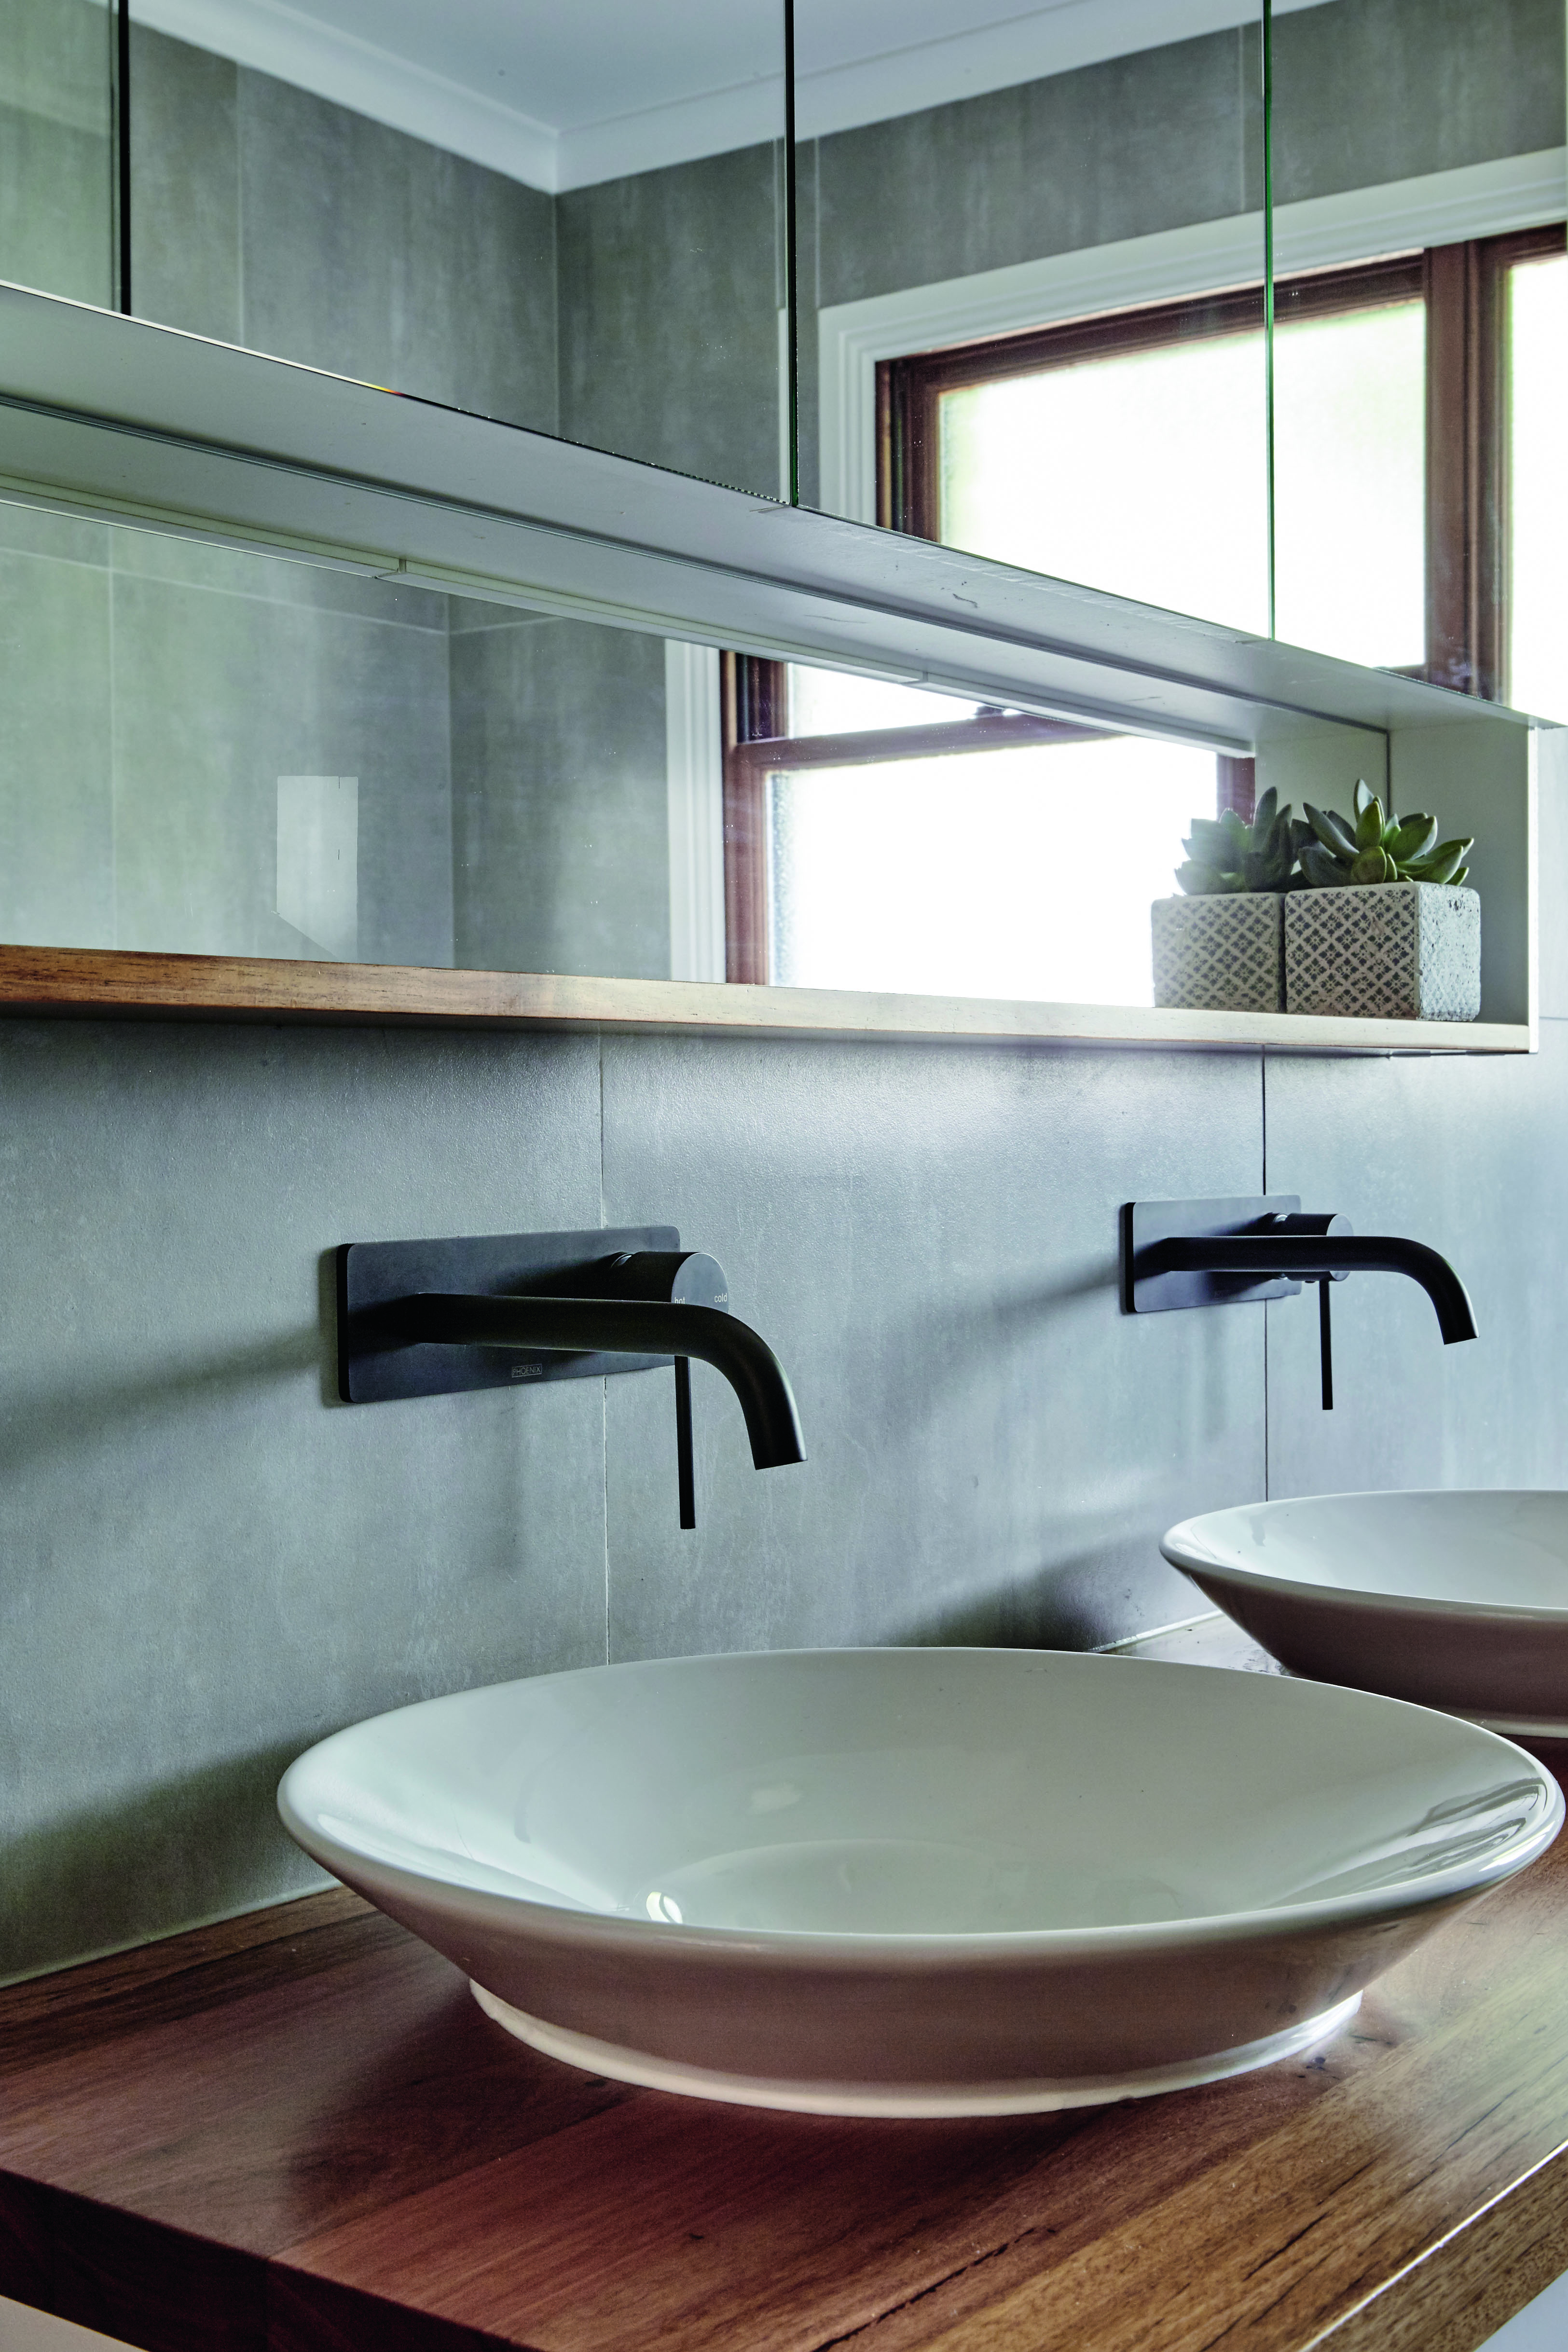 Synchronised style: a bathroom retreat - Kitchens & Bathrooms Quarterly